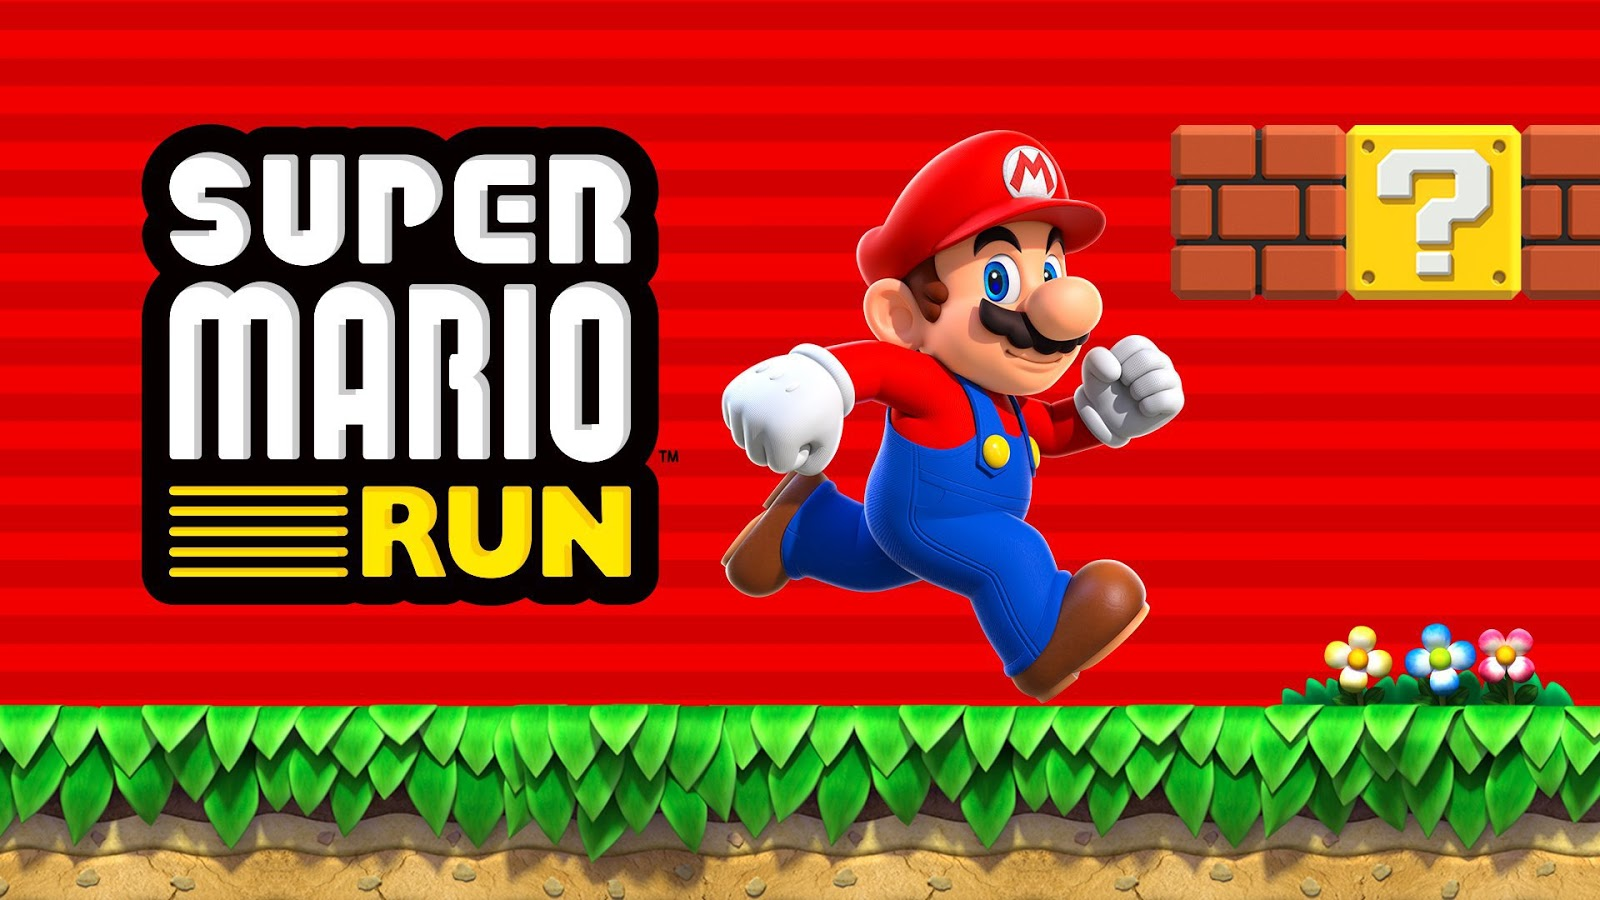 Ya se encuentra disponible Super Mario Run!